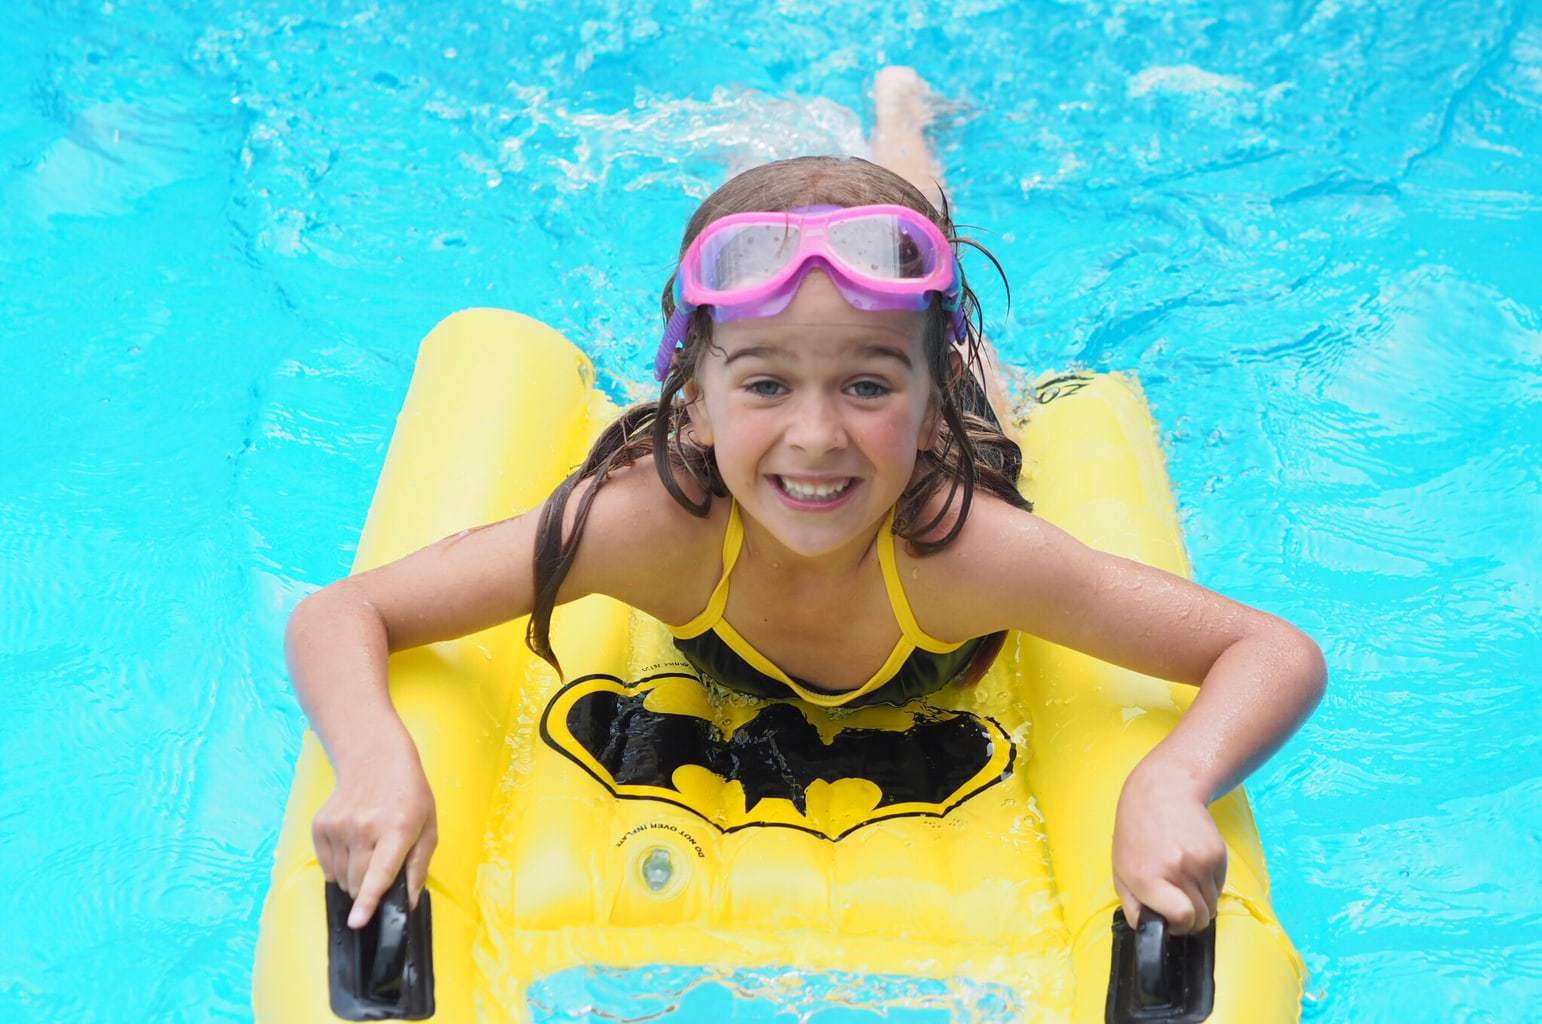 Travel Tips: DC Super Heroes Swimwear from Zoggs